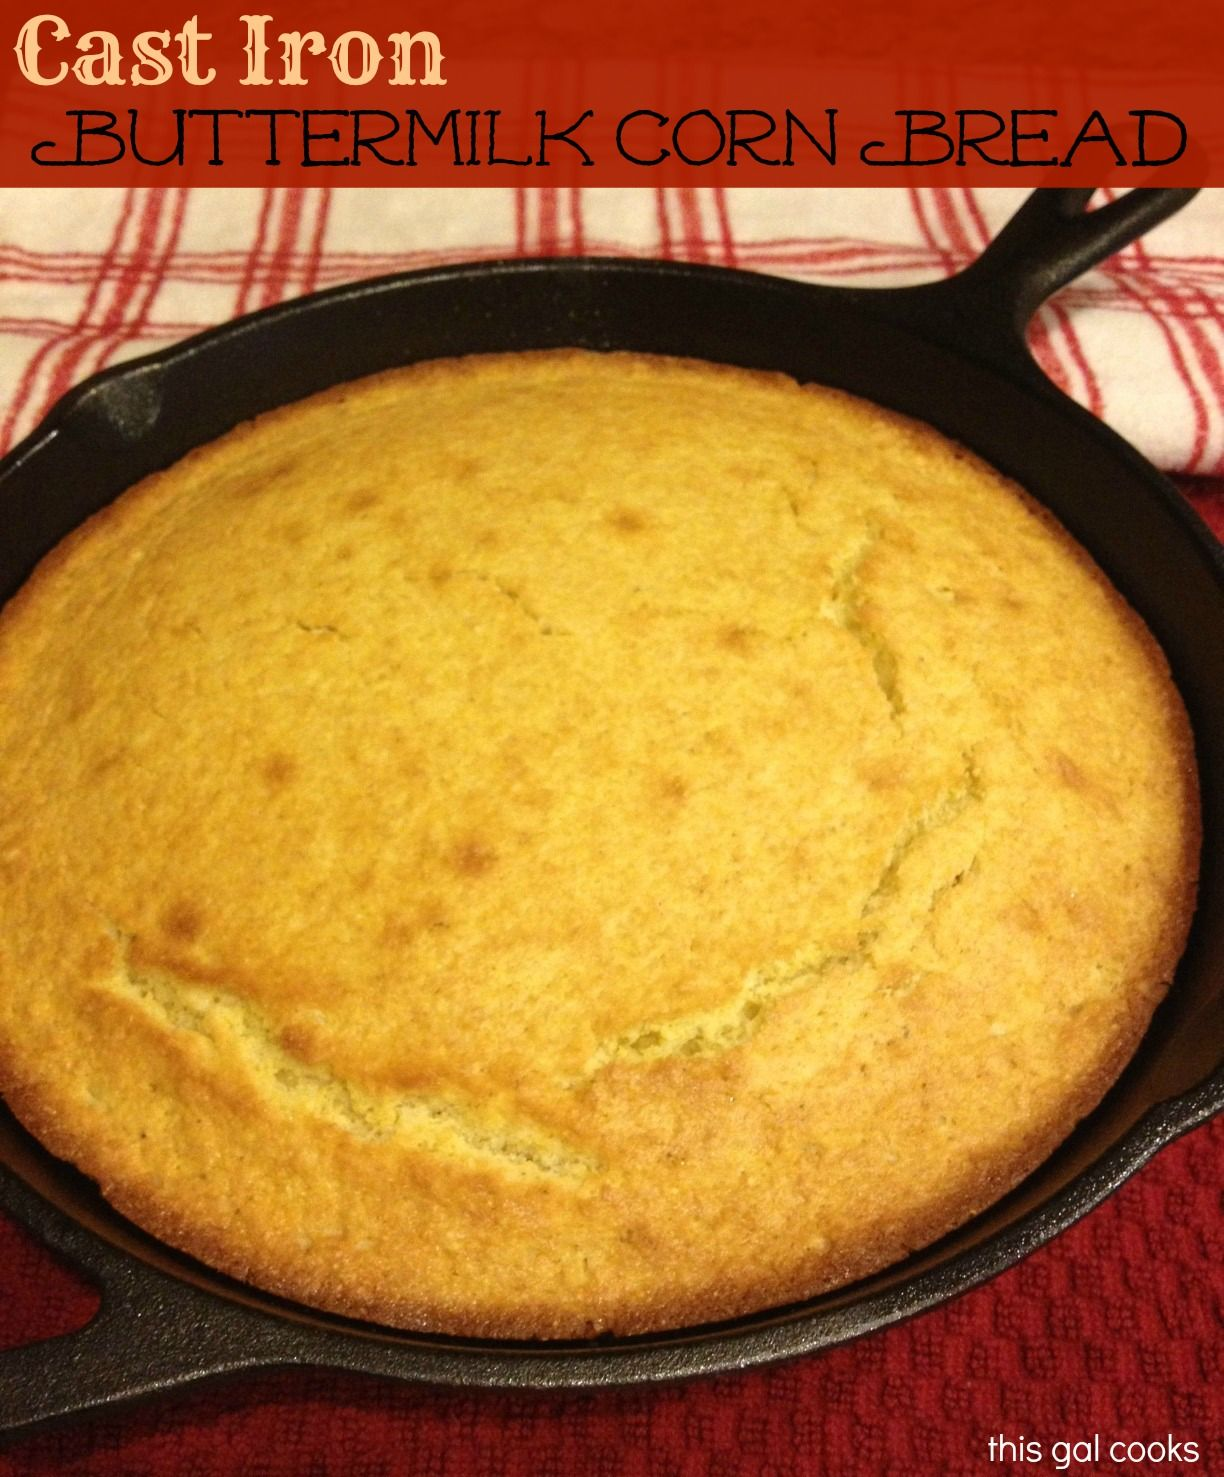 Cast Iron Buttermilk Cornbread Recipe Buttermilk Cornbread Cooking Food Recipes